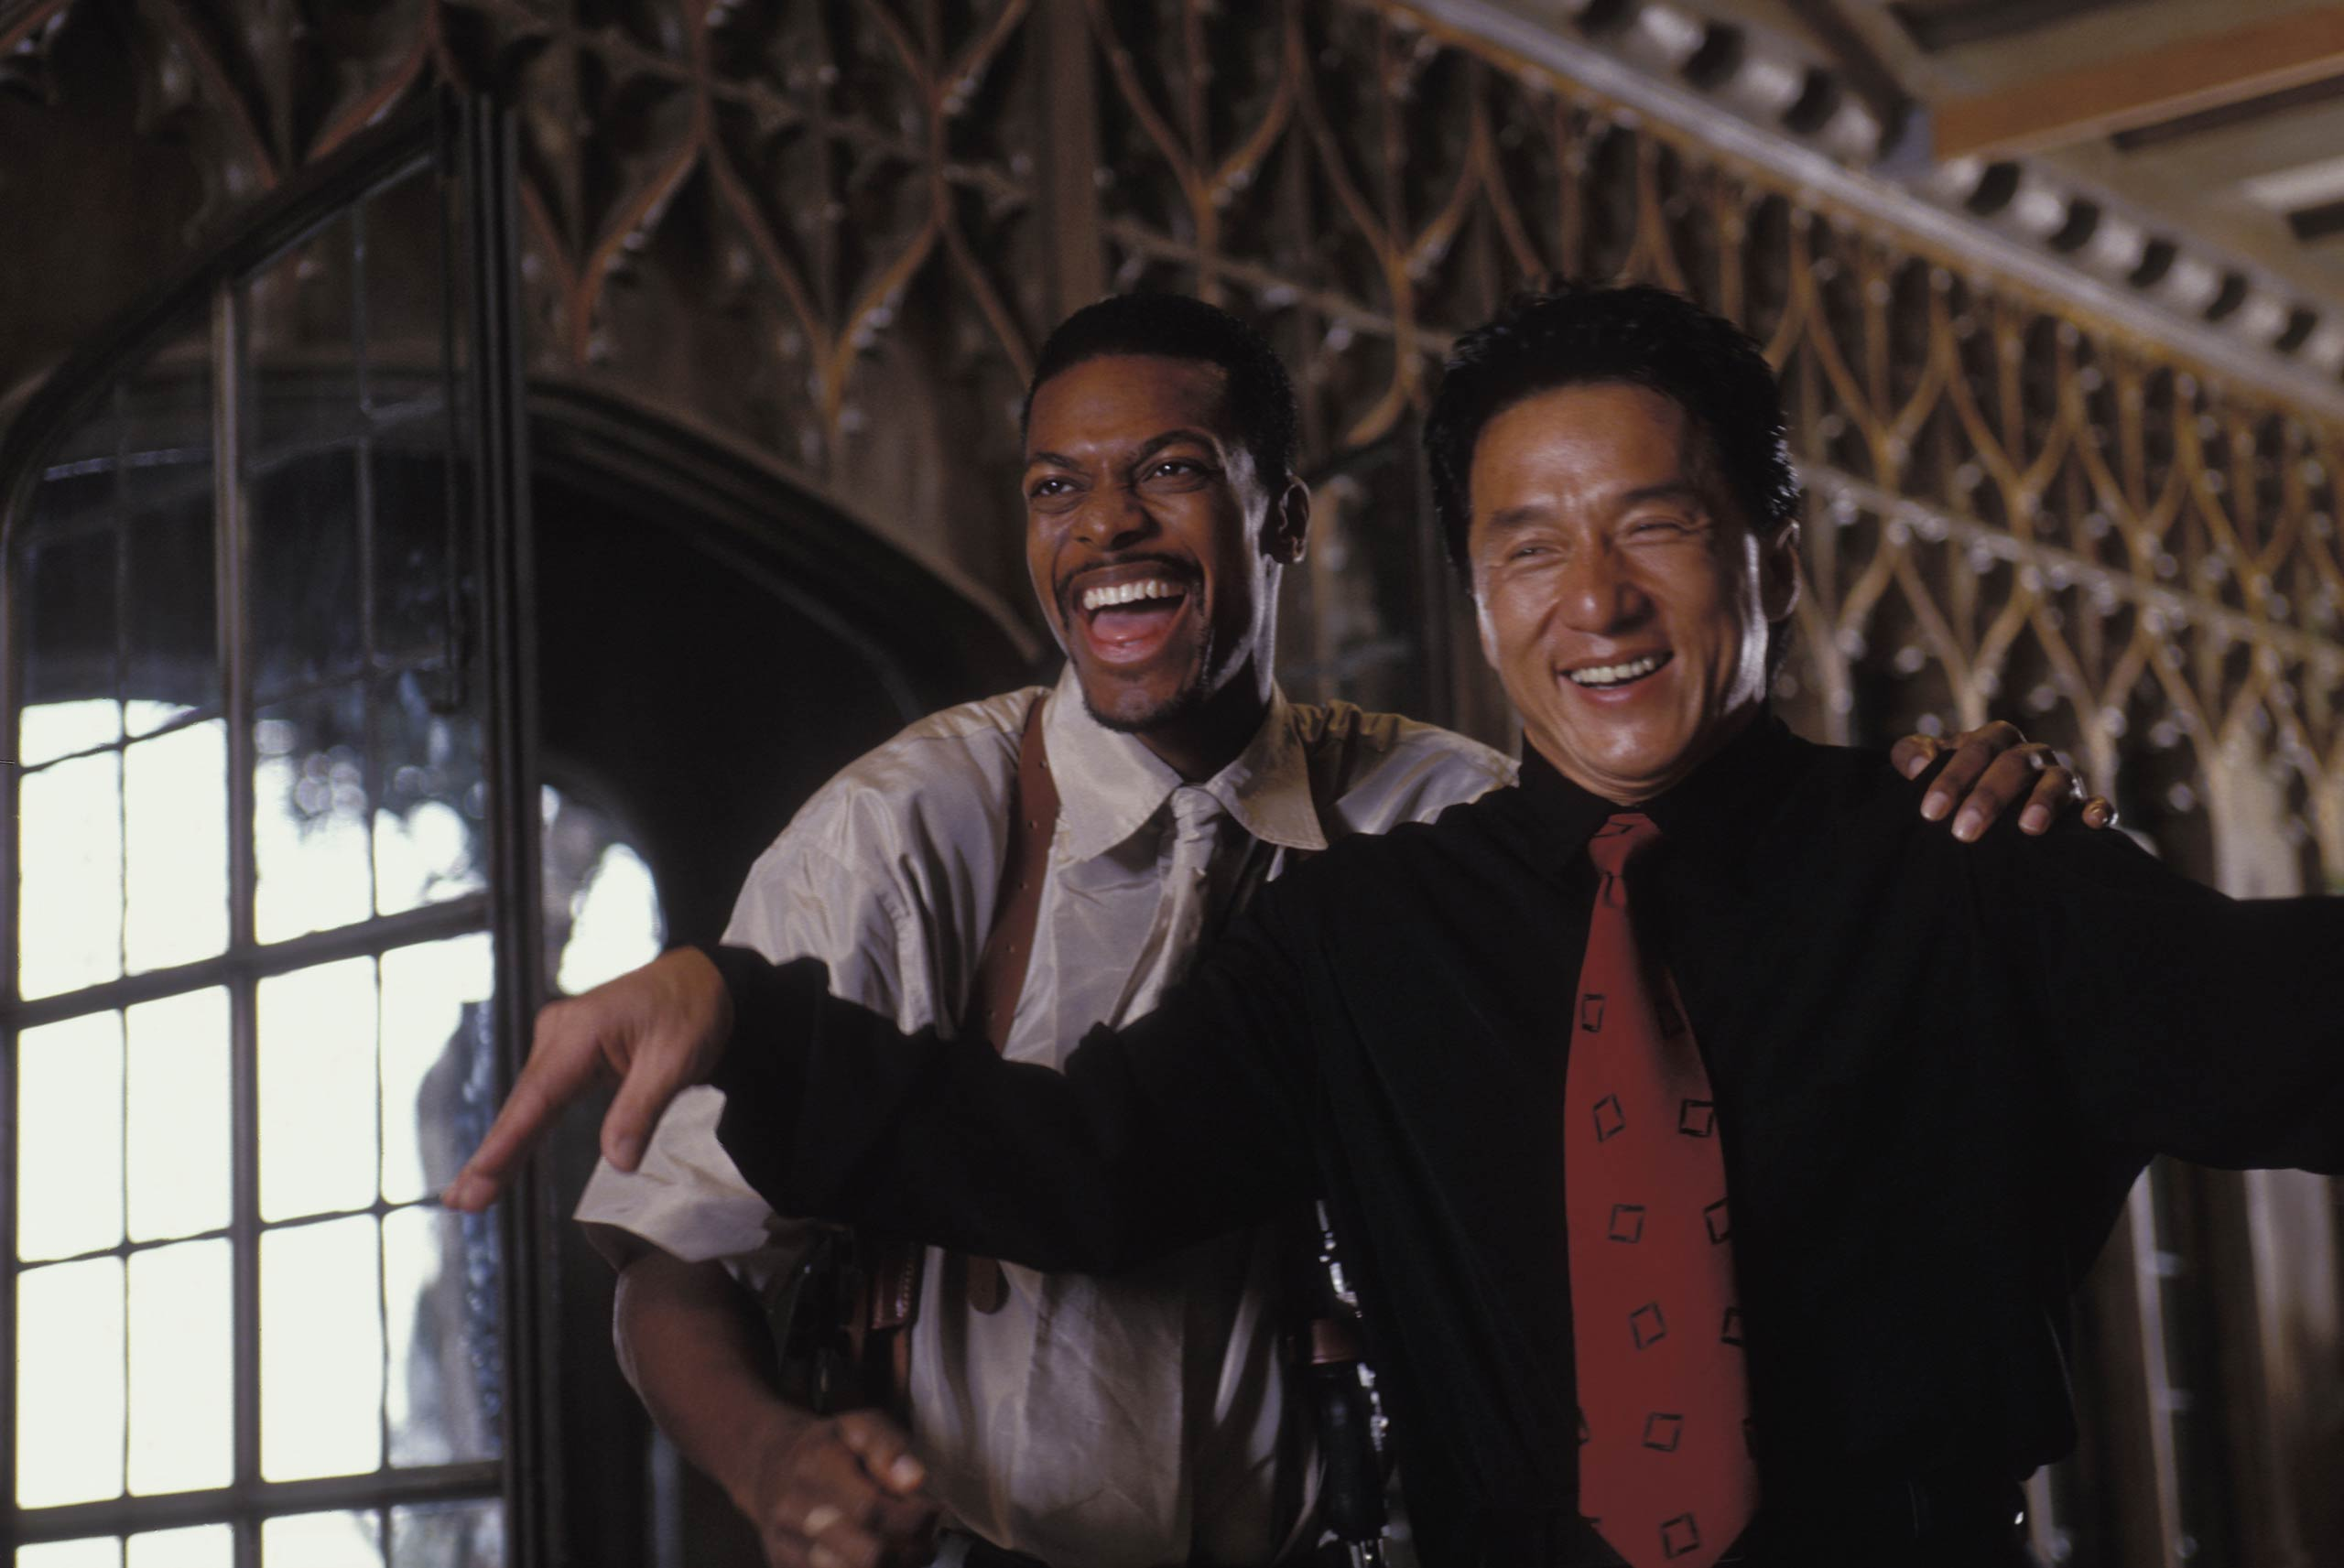 Rush Hour (CBS)                                                              The TV show version of Rush Hour will again pair up a play-by-the-rules Hong Kong police officer and a rebellious black Los Angeles cop in a procedural-type show.